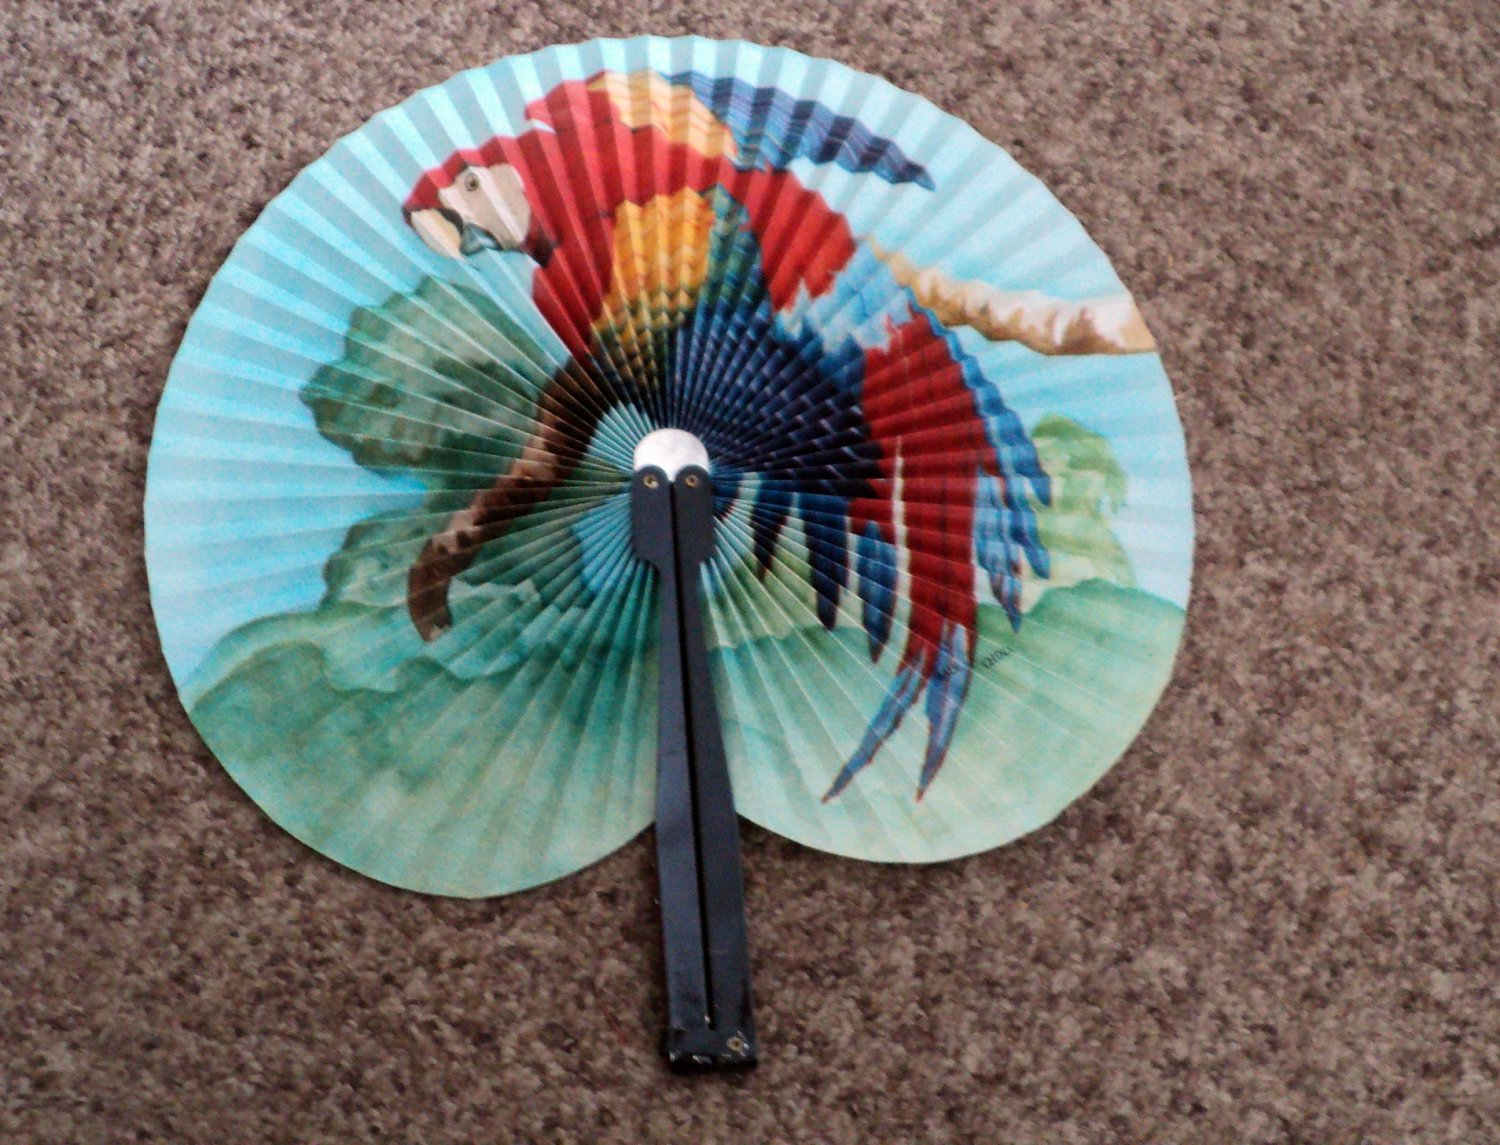 Vintage Parrot China Pocket Fan Made By Zhe Jiang Arts & Crafts Paper and Metal #301981